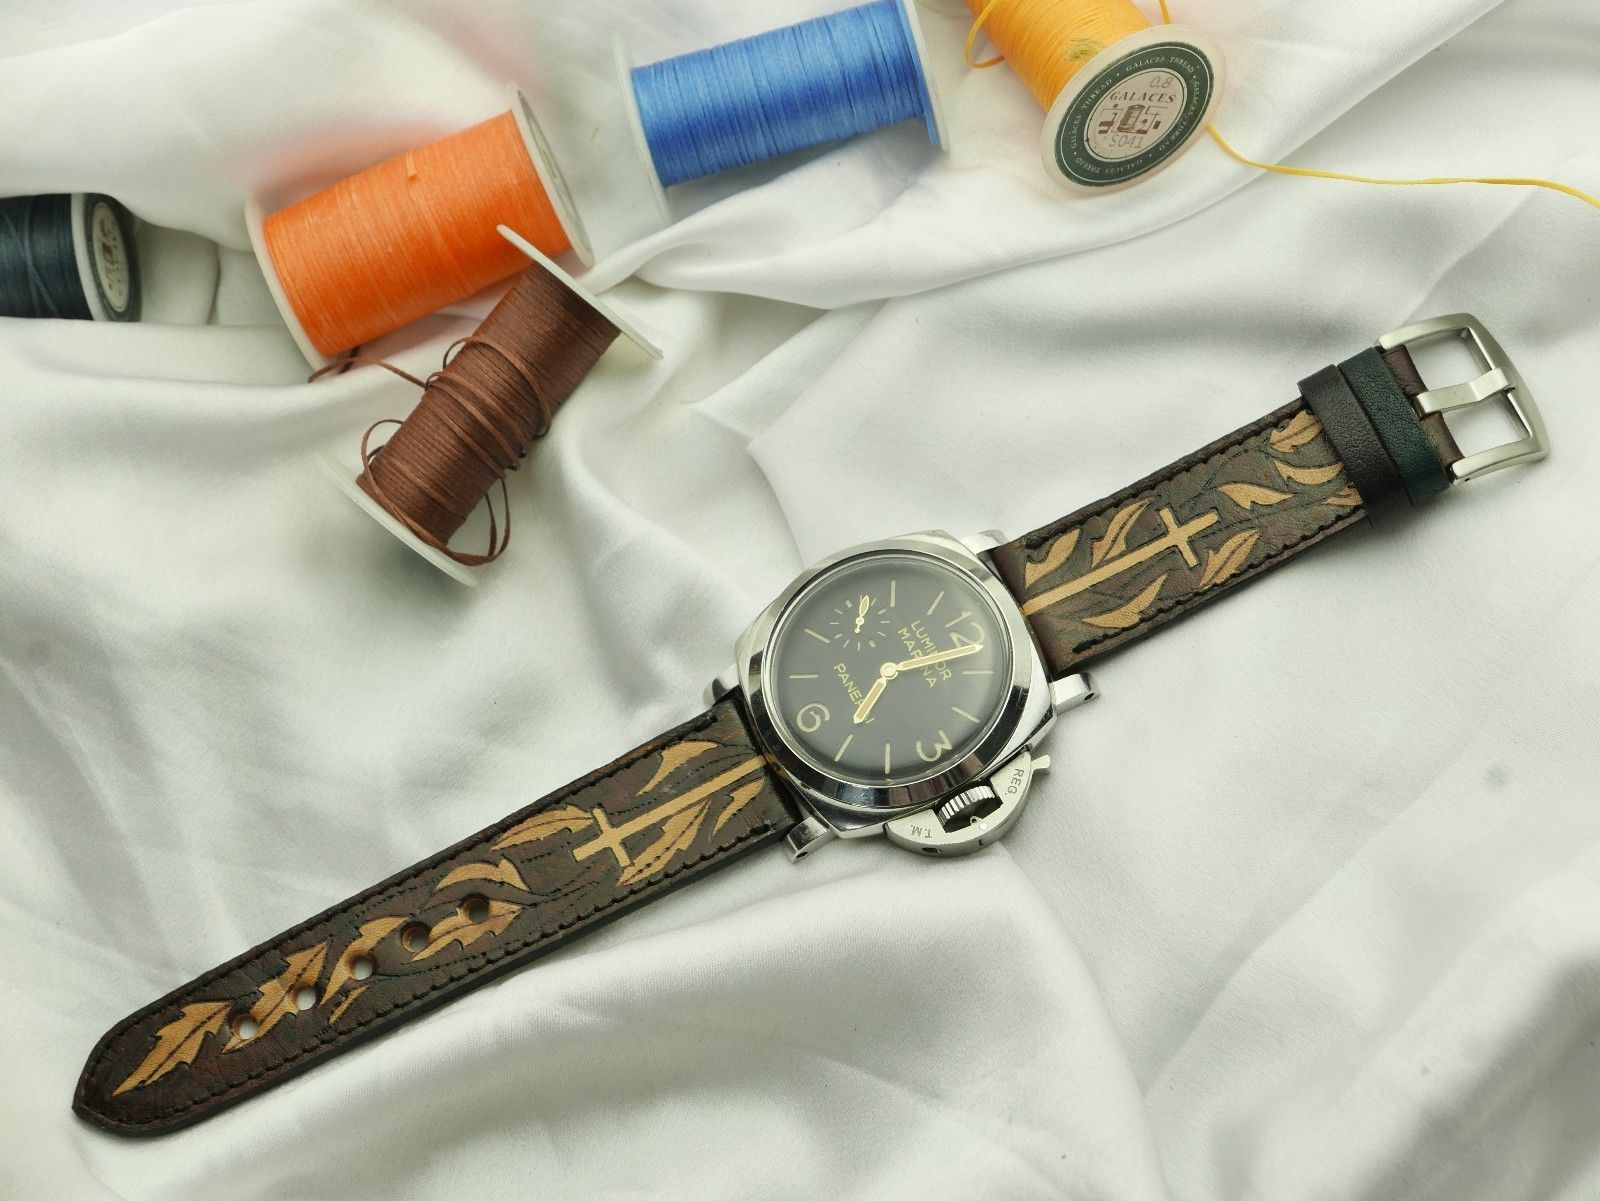 4a258b2b4 Details about 24mm/22mm Genuine Alligator,Crocodile Leather Watch Strap  BAND for Panerai watch | Accessories | Panerai watches, Crocodile và Crocodile  skin